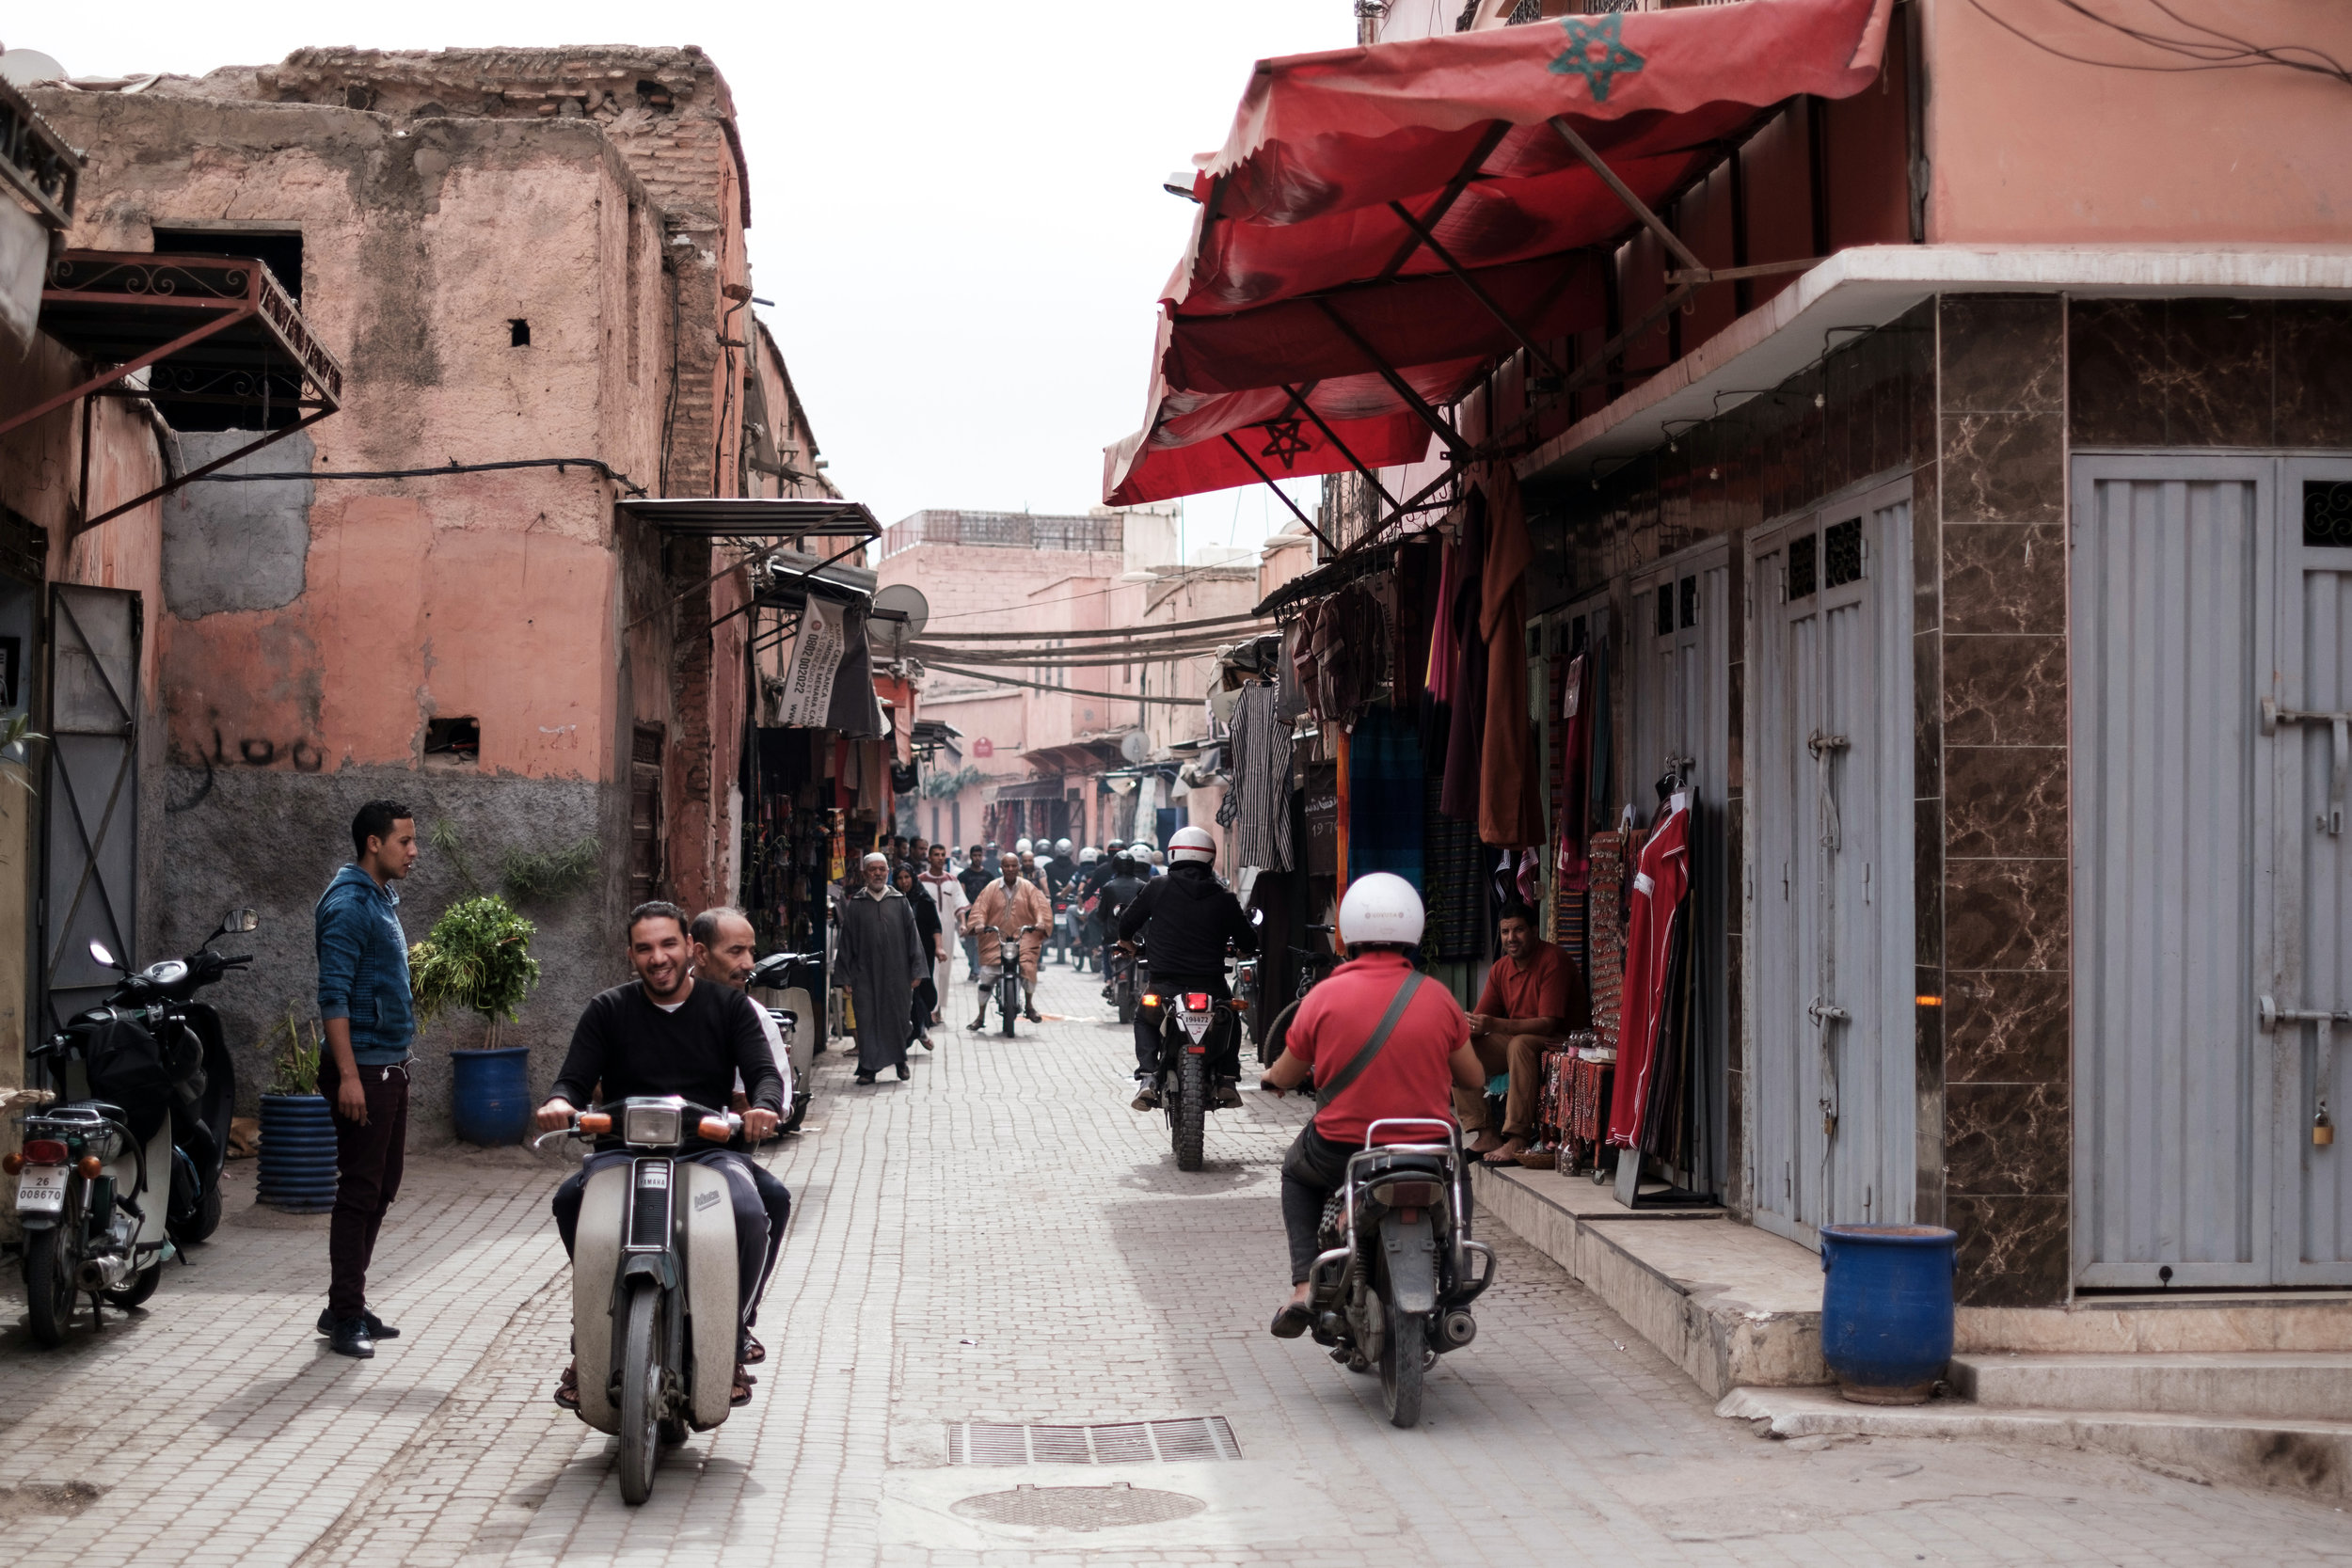 Scooter traffic in the narrow alleys in the Medina District